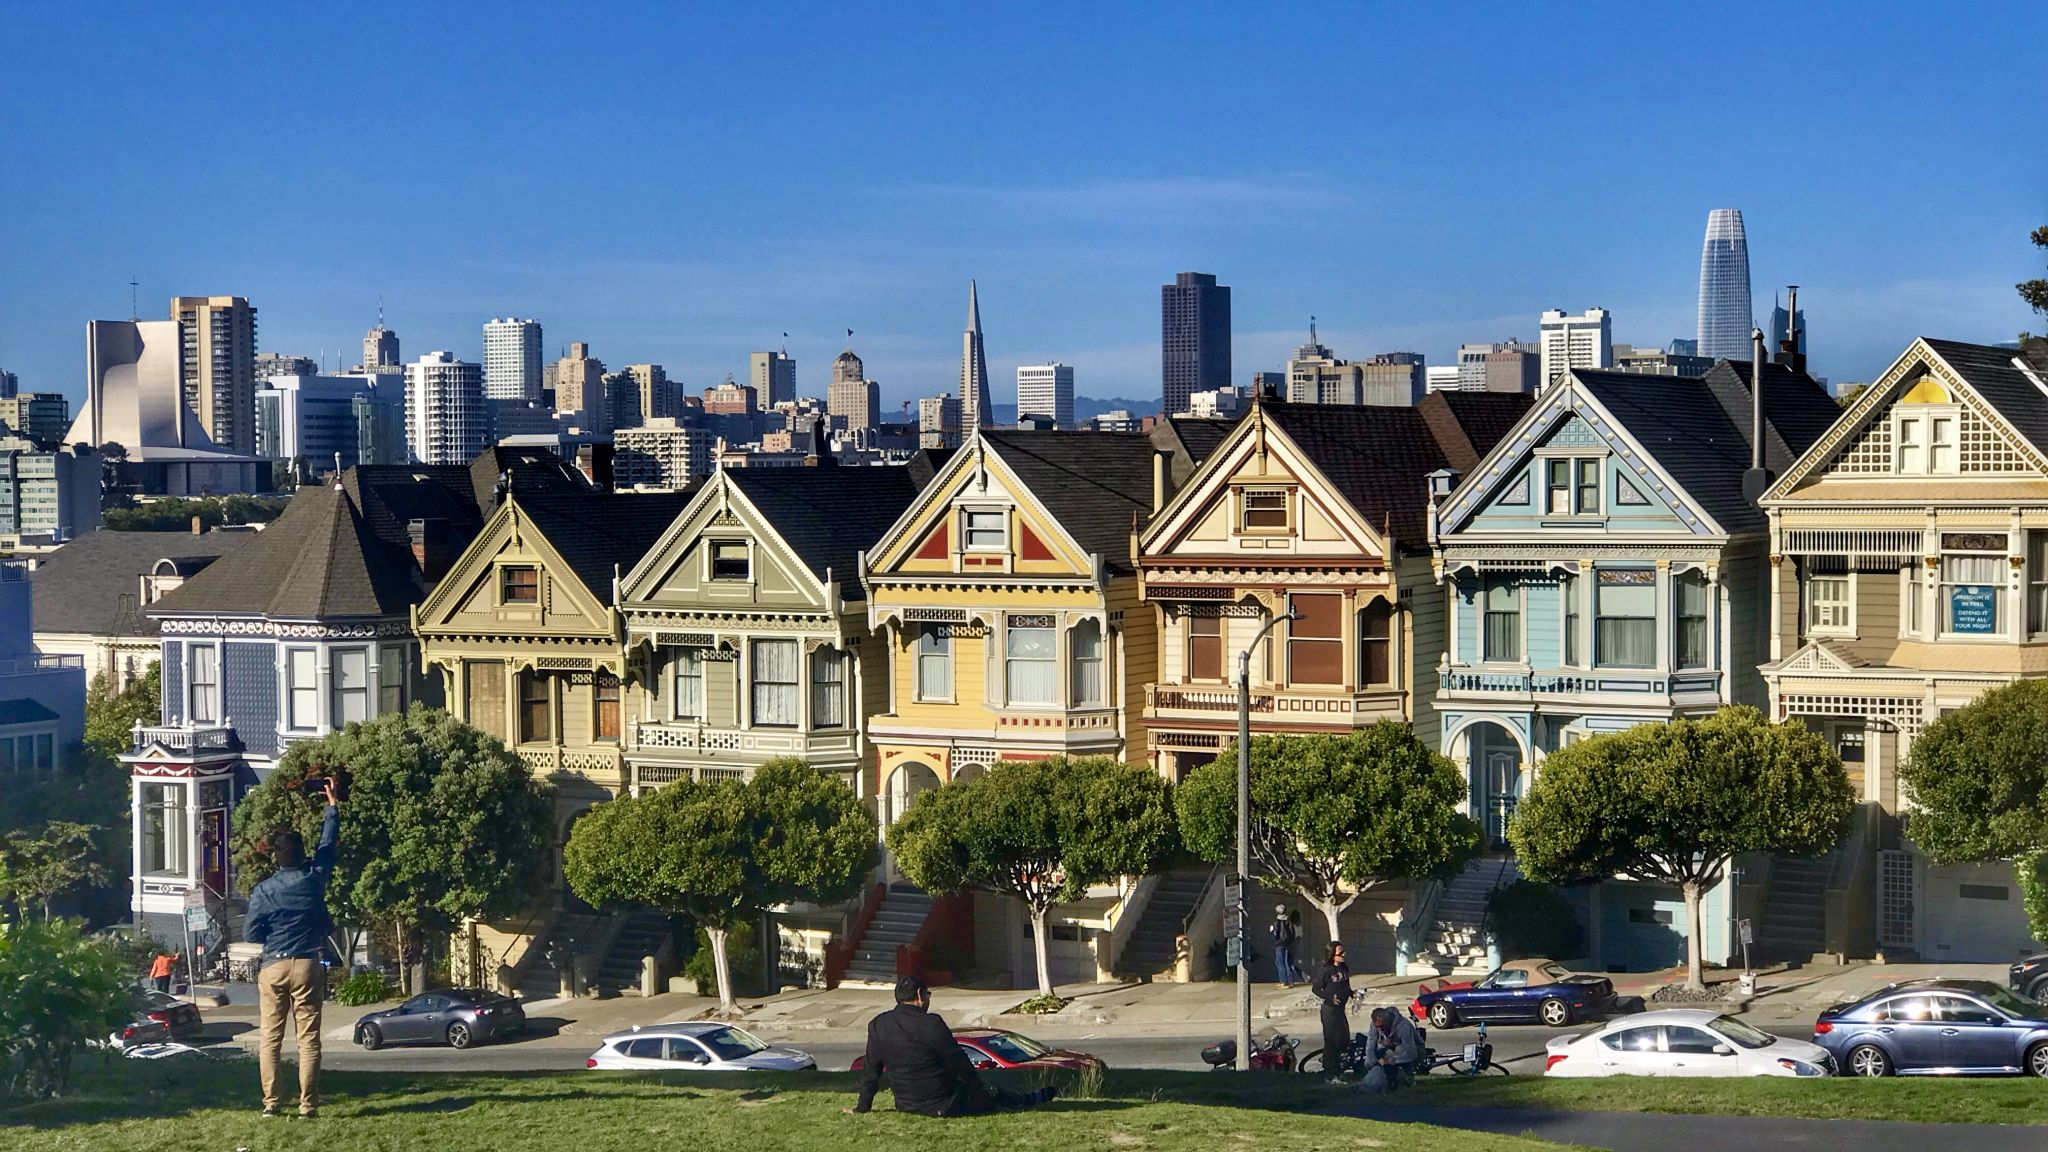 The Painted Ladies, USA